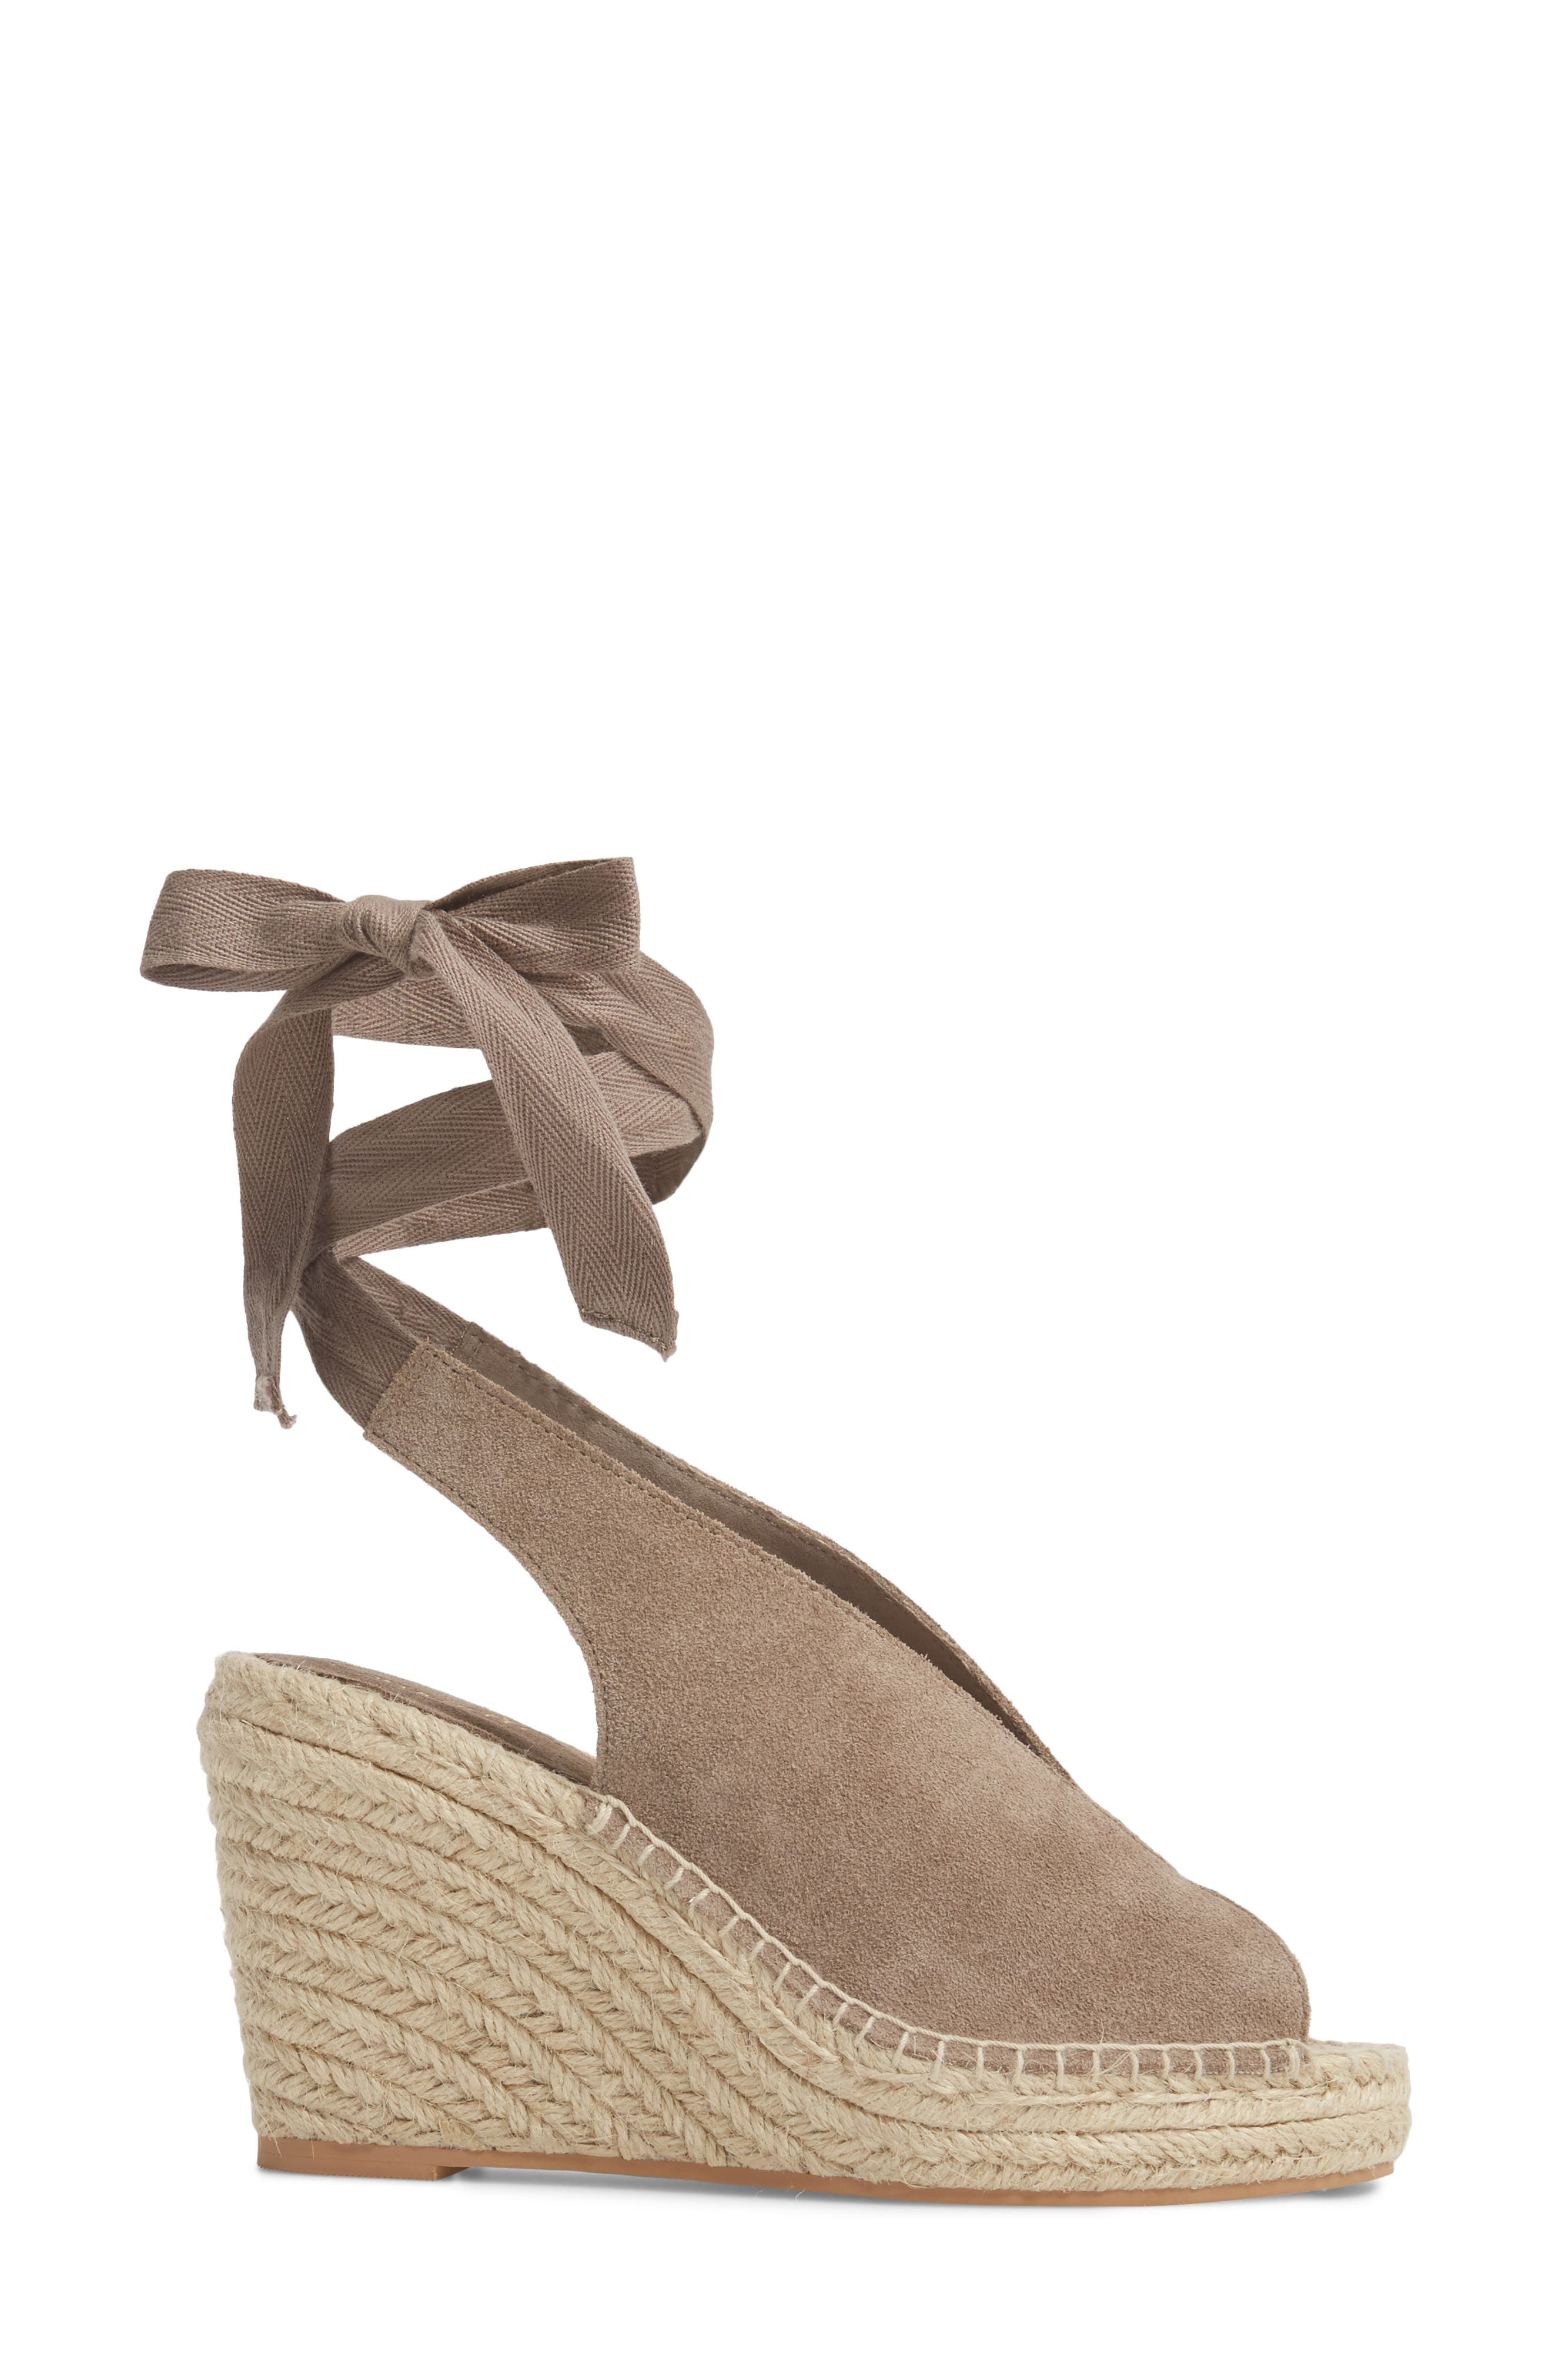 Interrelated Espadrille Wedge Sandal,                             Alternate thumbnail 3, color,                             Taupe Suede